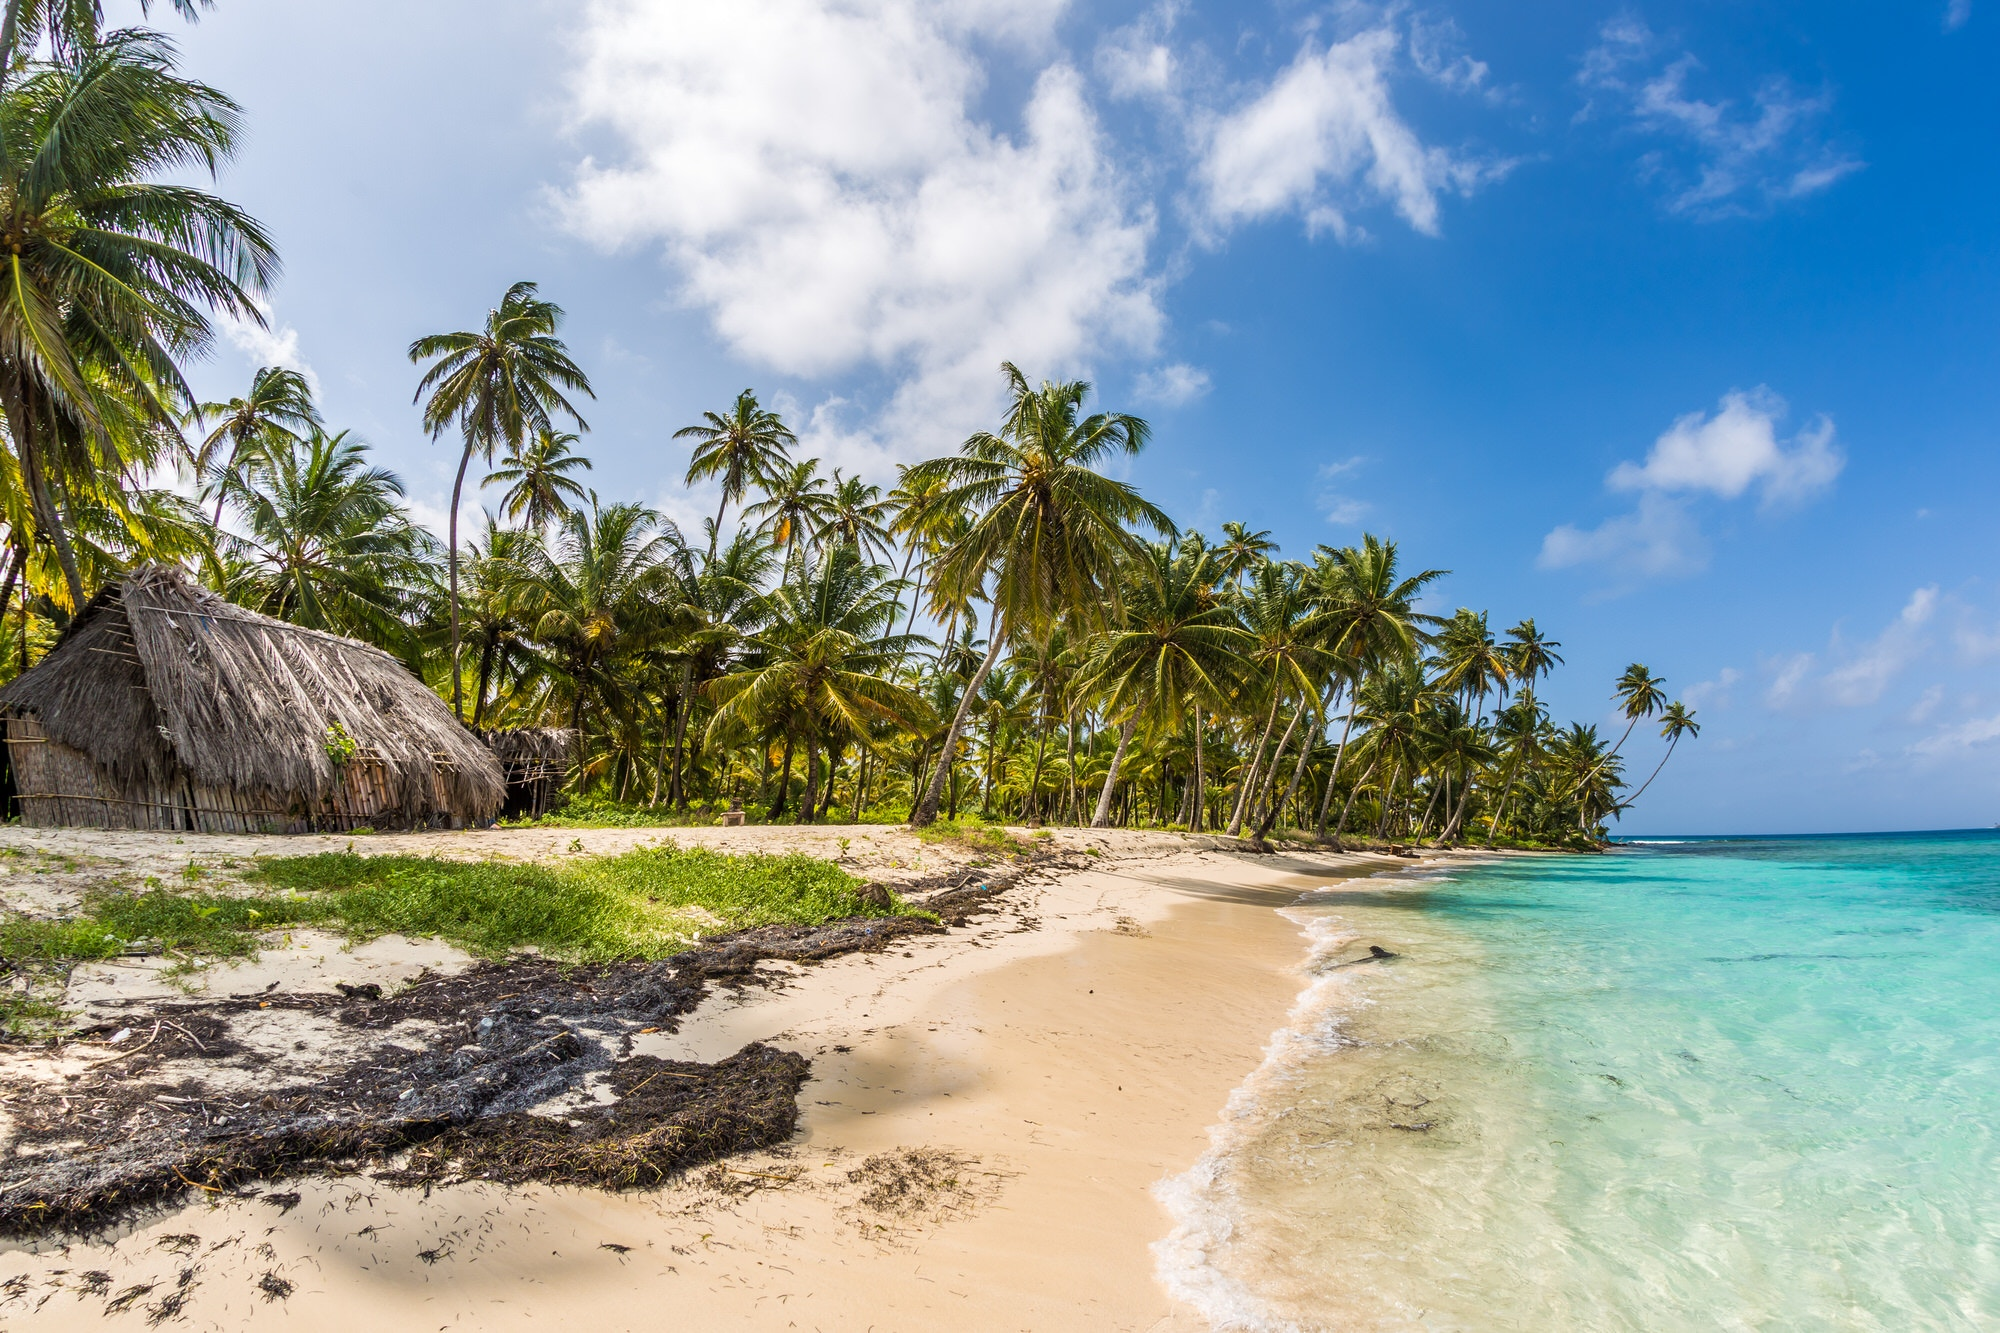 The palm-fringed shoreline of the San Blas Islands, Panama © Andy Troy / 500px